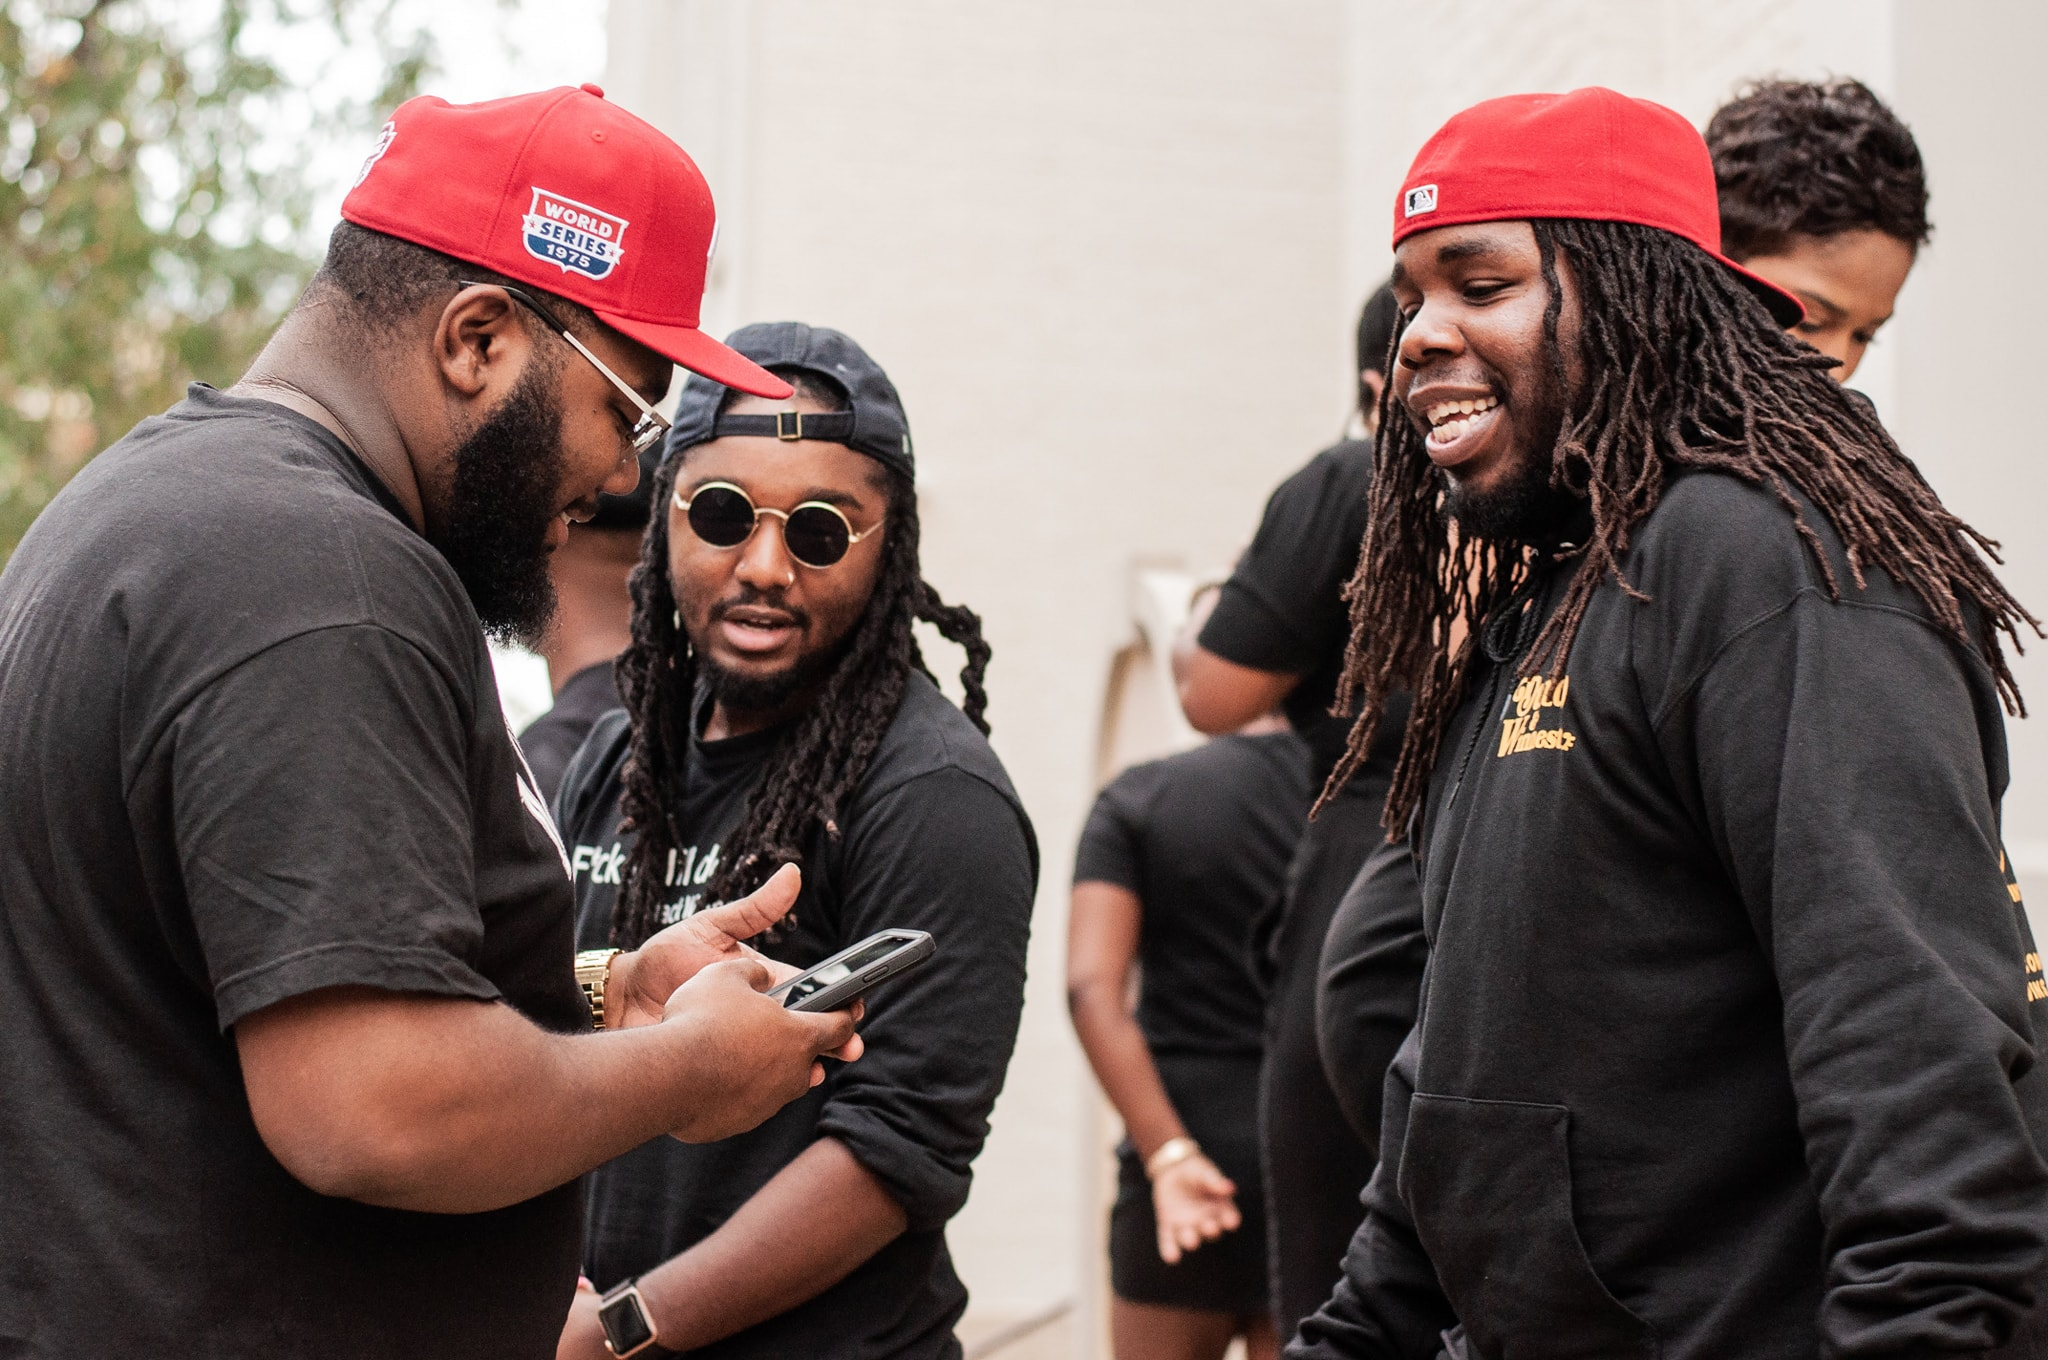 """Candids from """"A Great Day In Cincy"""". Ron Blassingame, Chris Crooks, and Tristan Overton photographed by Cintagious."""